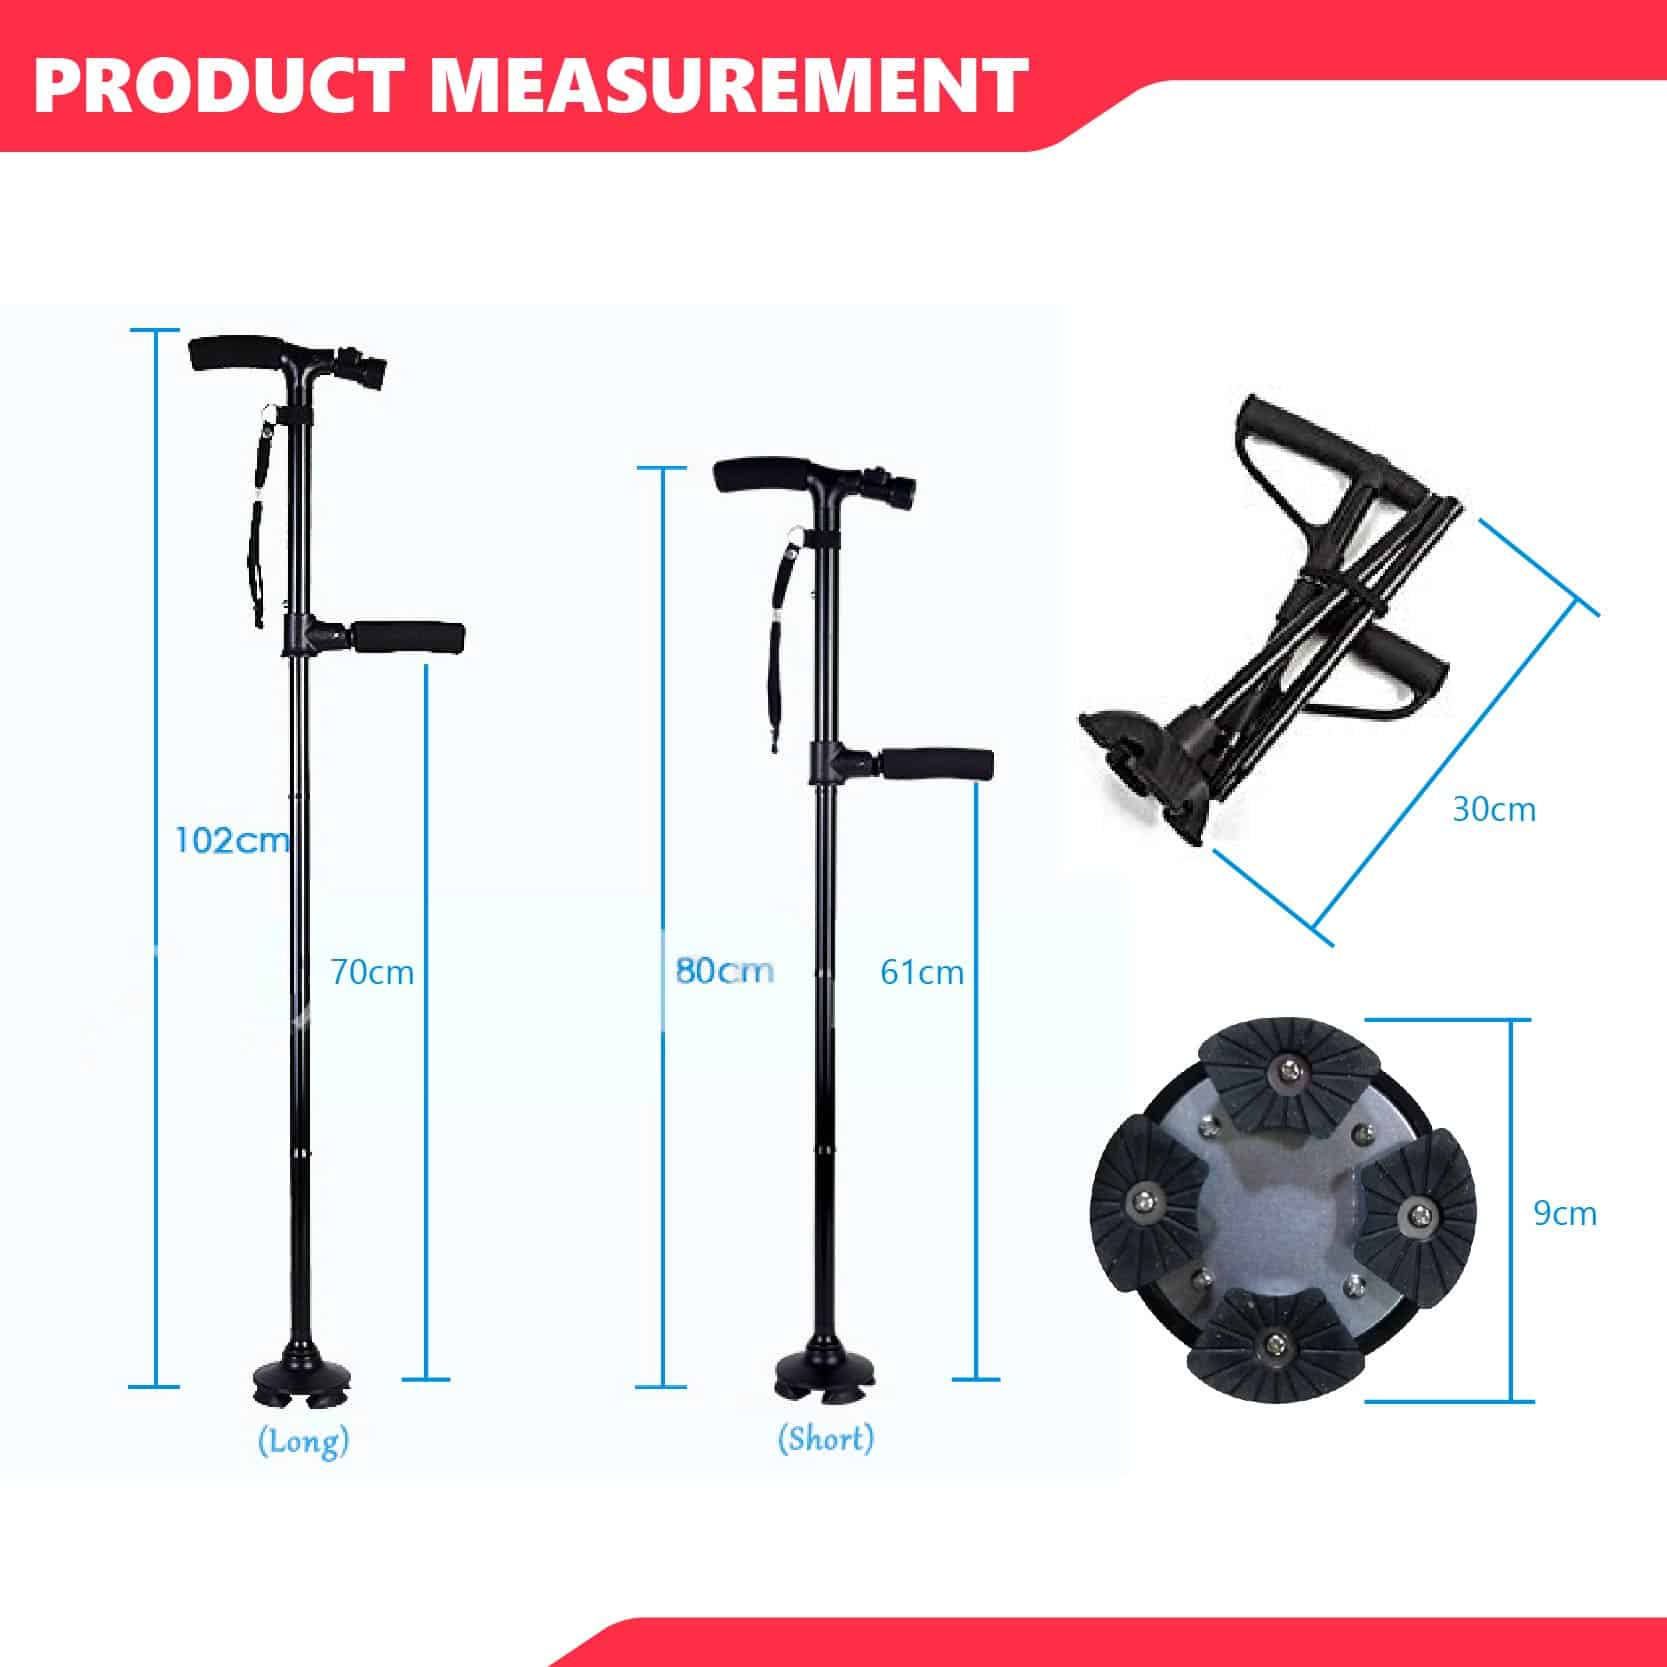 High Rise Walking Stick with Build-in LED - Demo Measurement